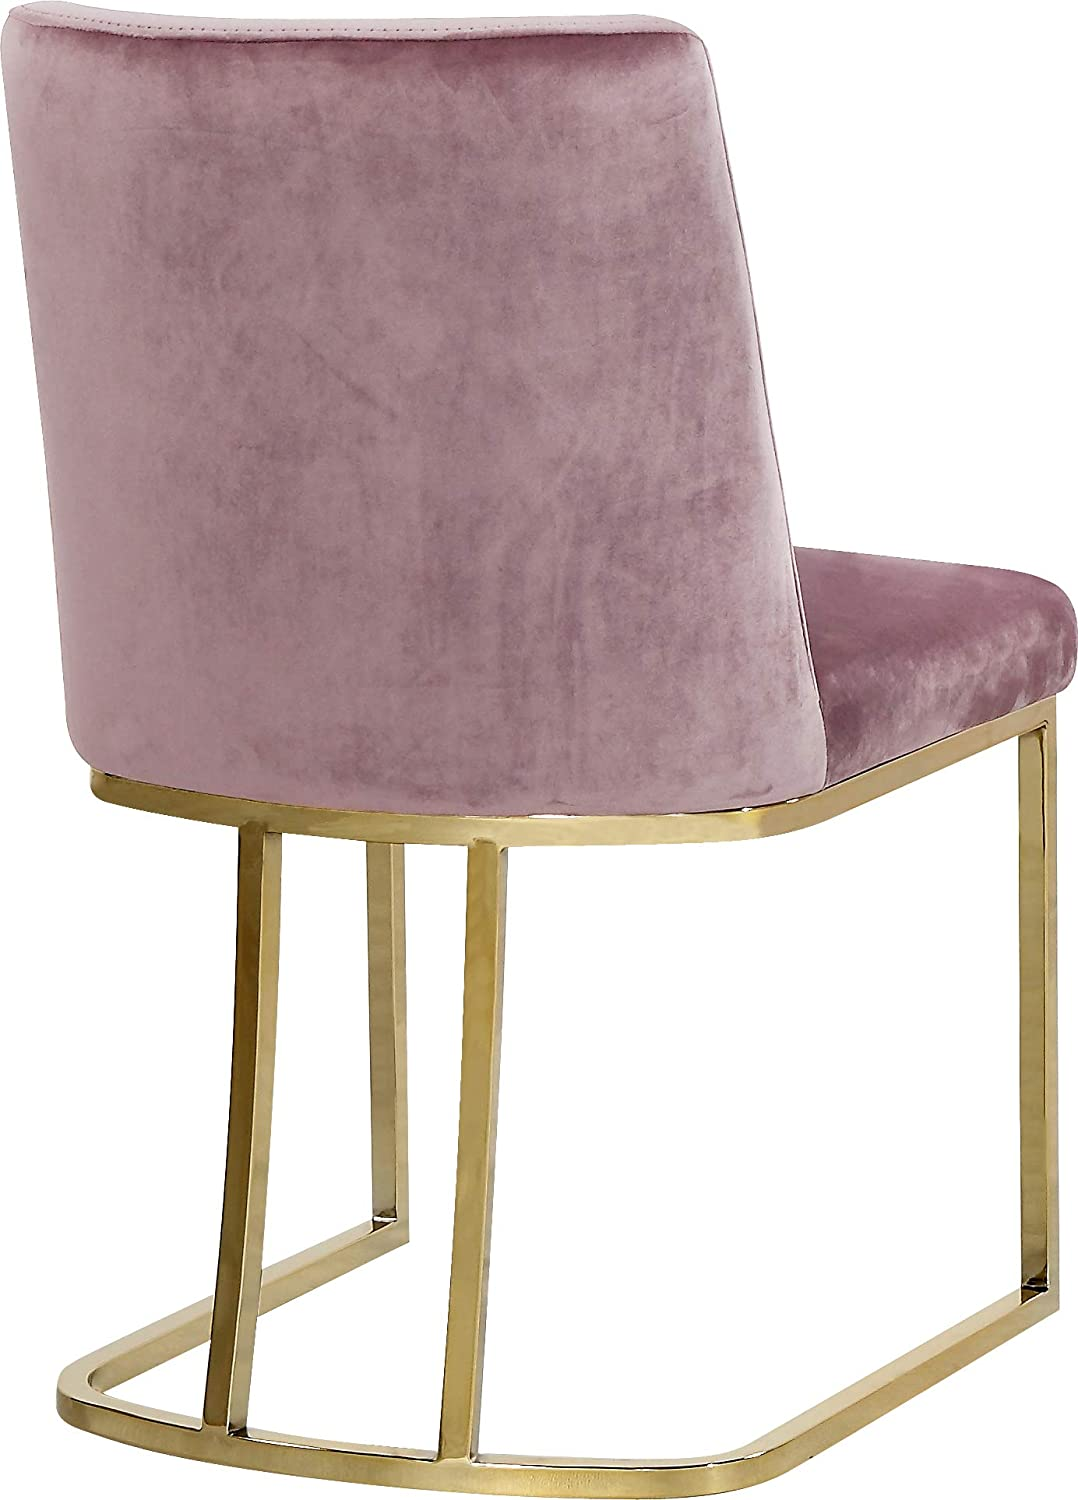 Meridian Furniture Heidi Collection Pink Modern Contemporary Velvet Upholstered Dining Chair with Polished Gold Metal Frame, Set of 2, 19 W x 23 D x 32 H,